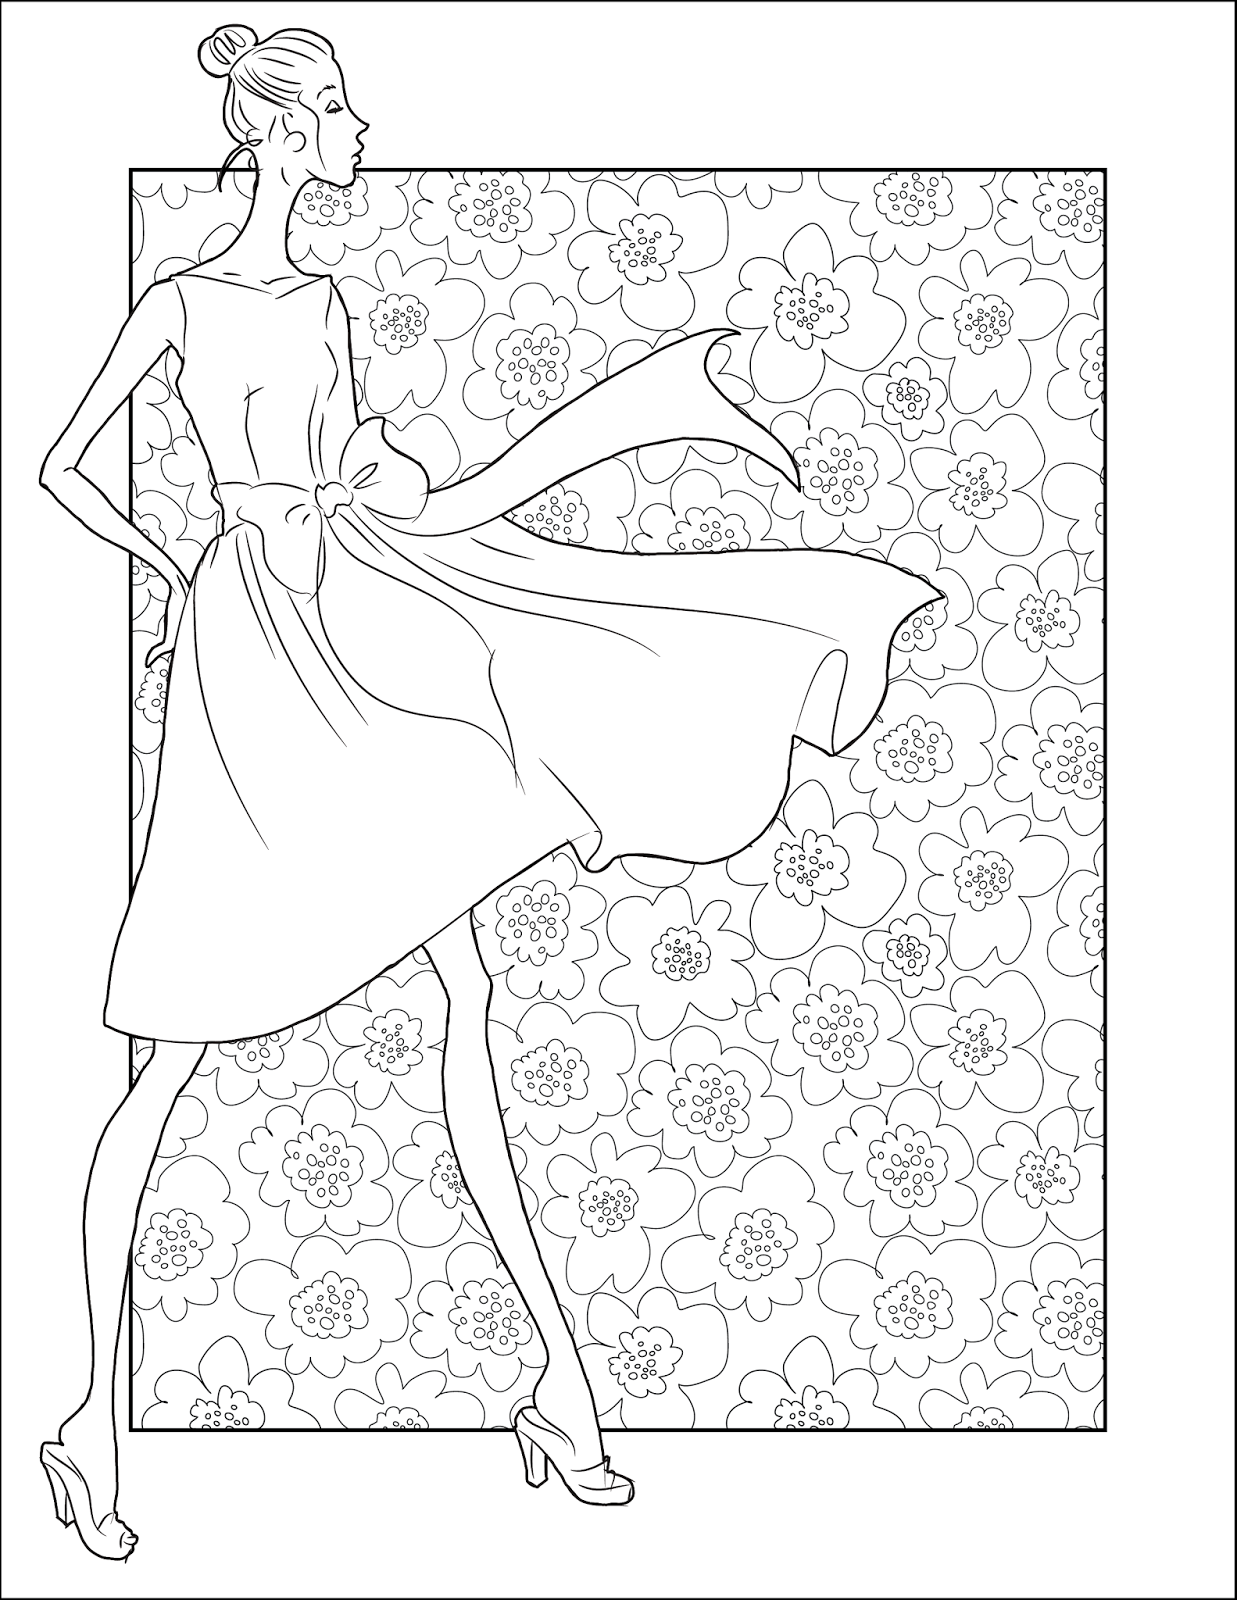 Free Fashion Coloring Pages For Girls Printable, Download Free ... | 1600x1237